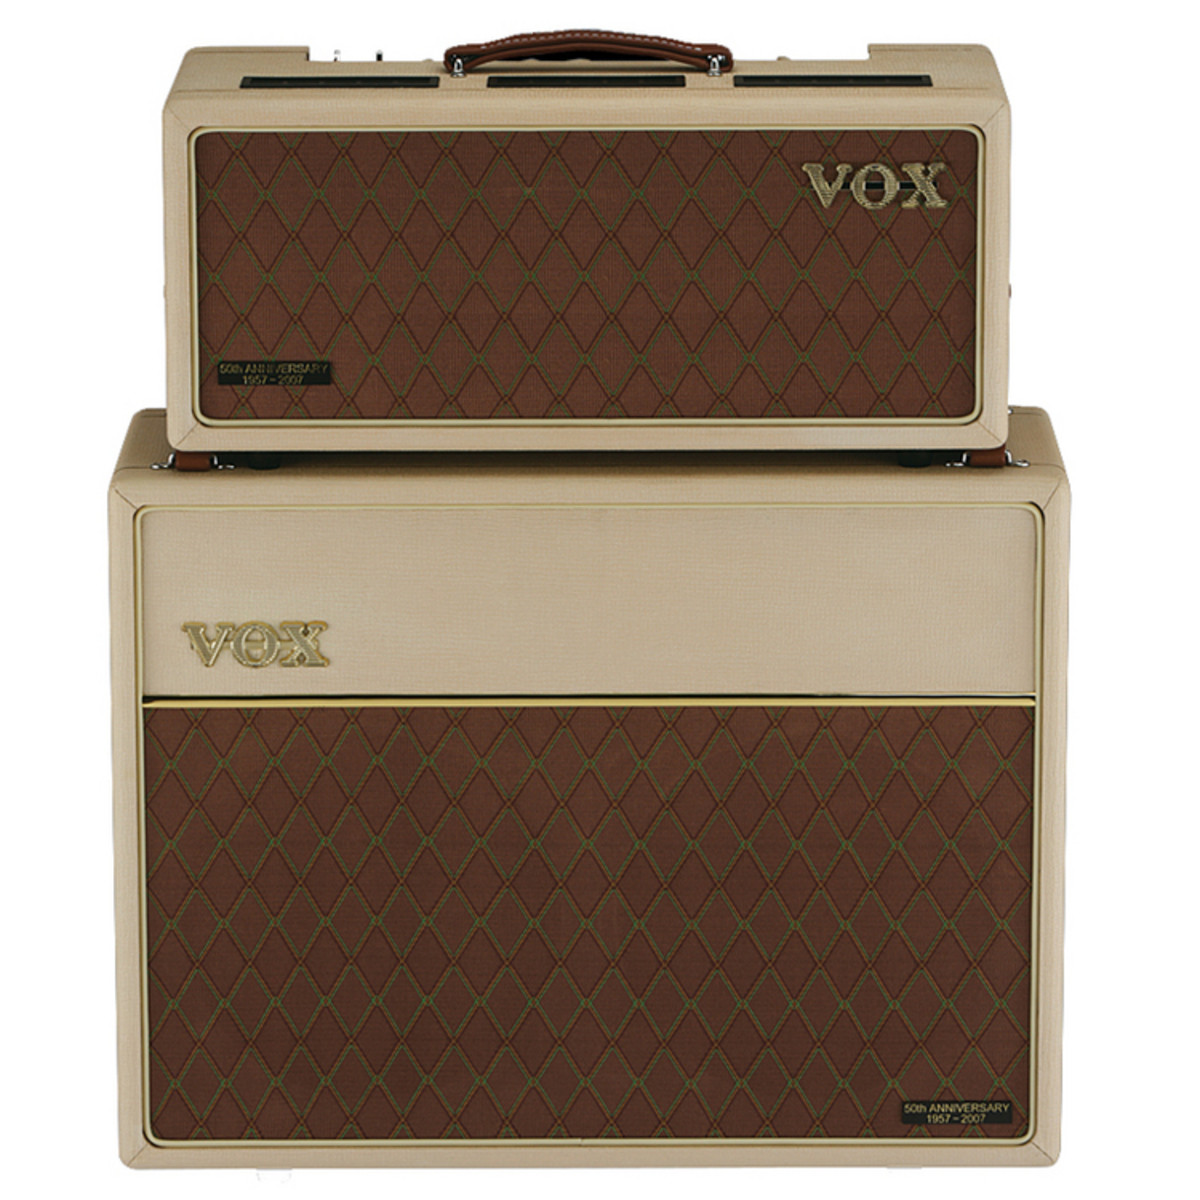 vox ac30hh heritage handwired series amp head at gear4music. Black Bedroom Furniture Sets. Home Design Ideas